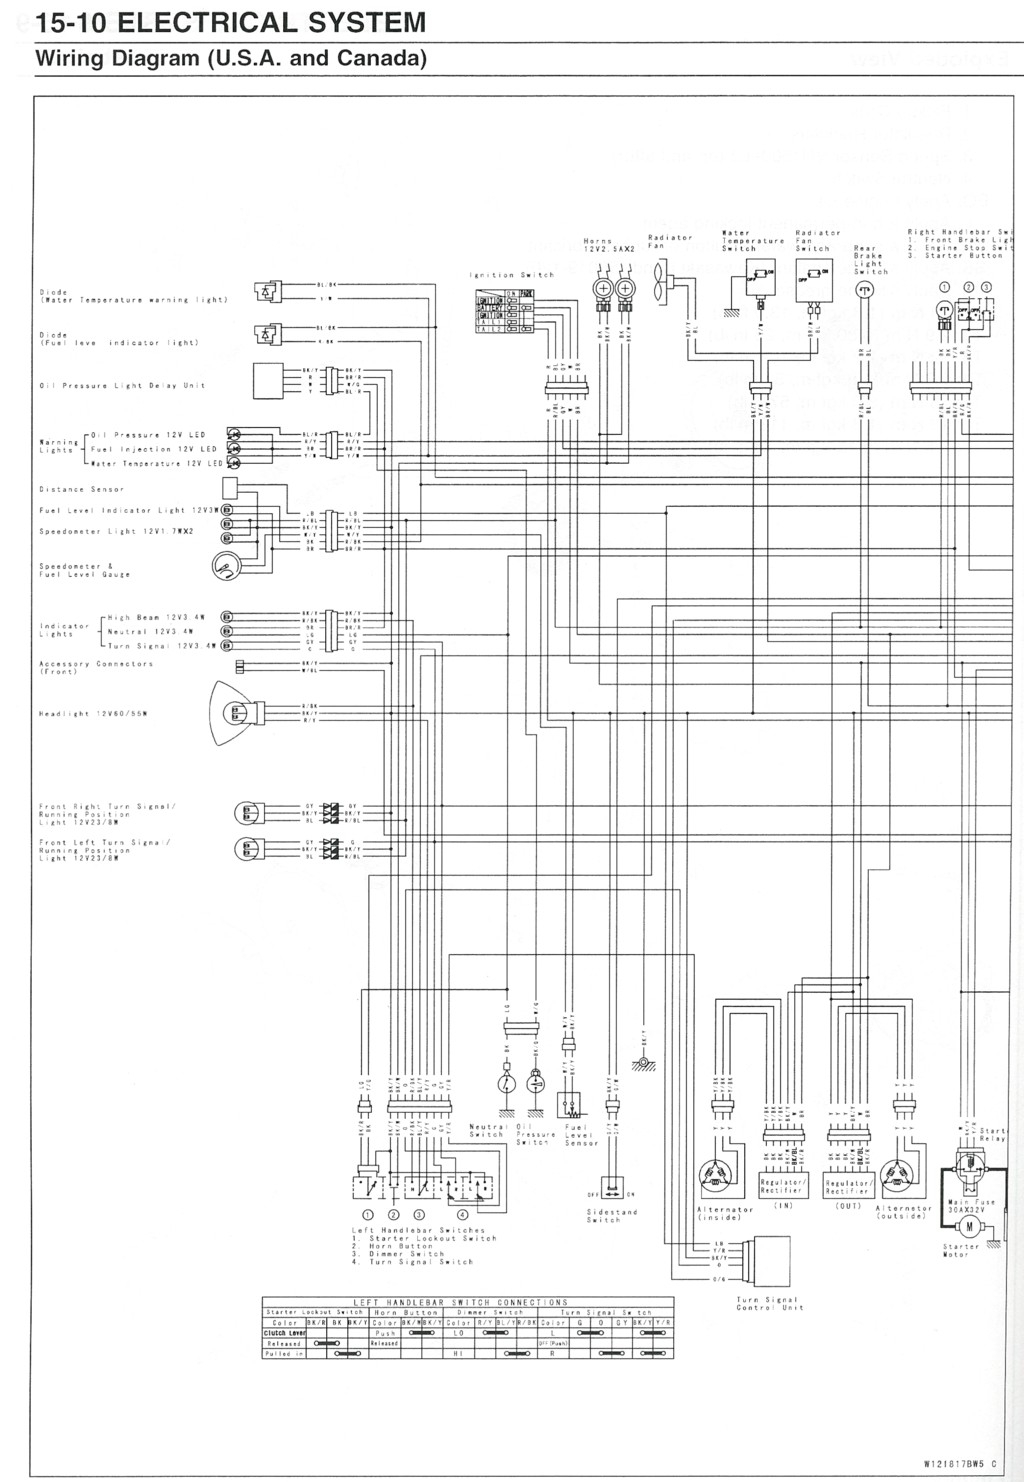 nomad_wiring_diagram_carbed_p1 vulcan wiring diagrams gadget's fixit page Kawasaki Vulcan 1500 Wiring Diagram at nearapp.co